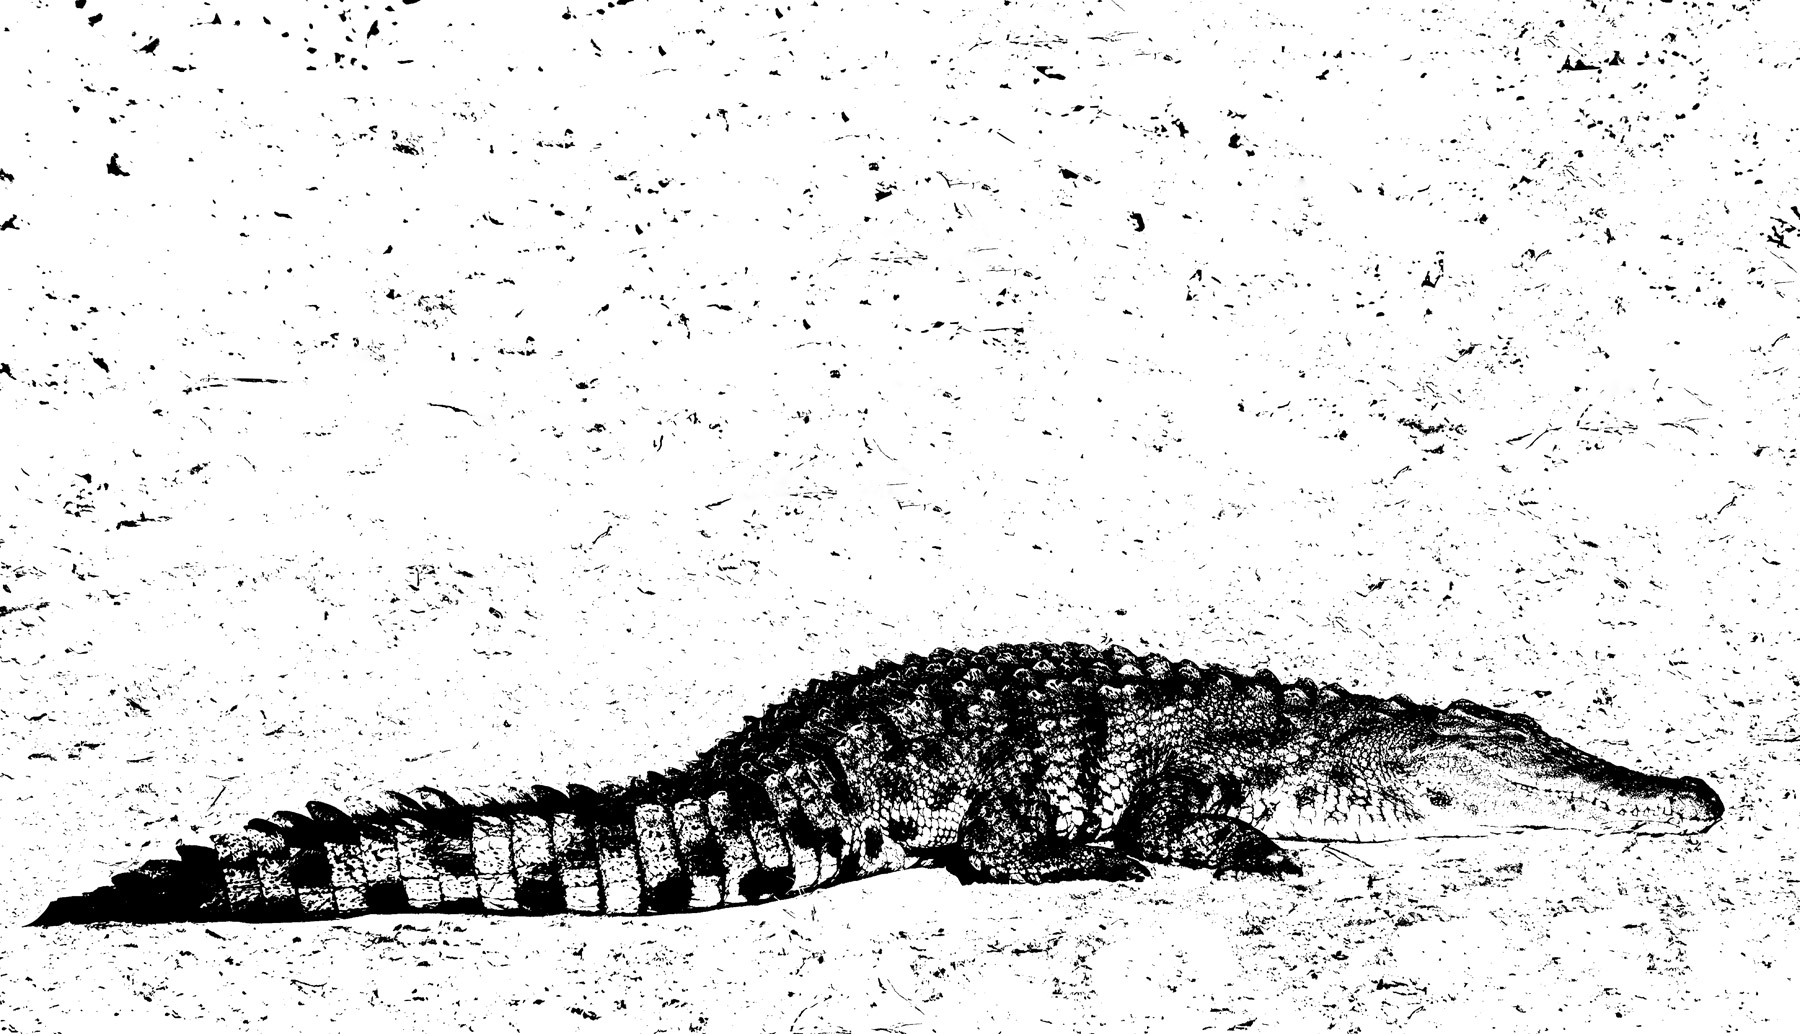 Crocodile Etching, Chobe, Botswana, Africa, river, marked, basking, sun, stylised, interpretation, photo